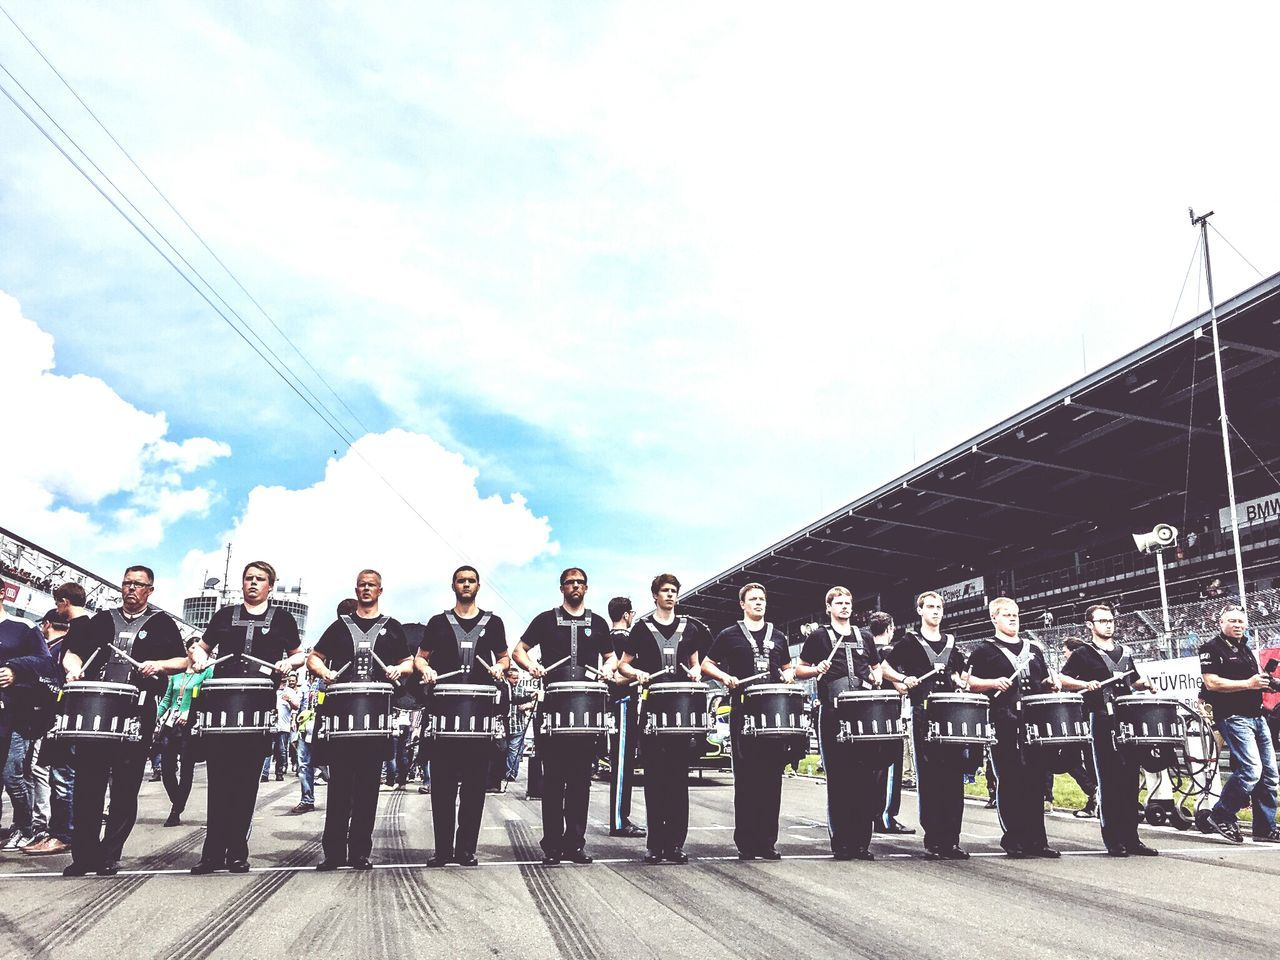 Motorsport 24h Race Nurburgring Orchestra Marching Band Marchingband Trommler Band Marsch Race